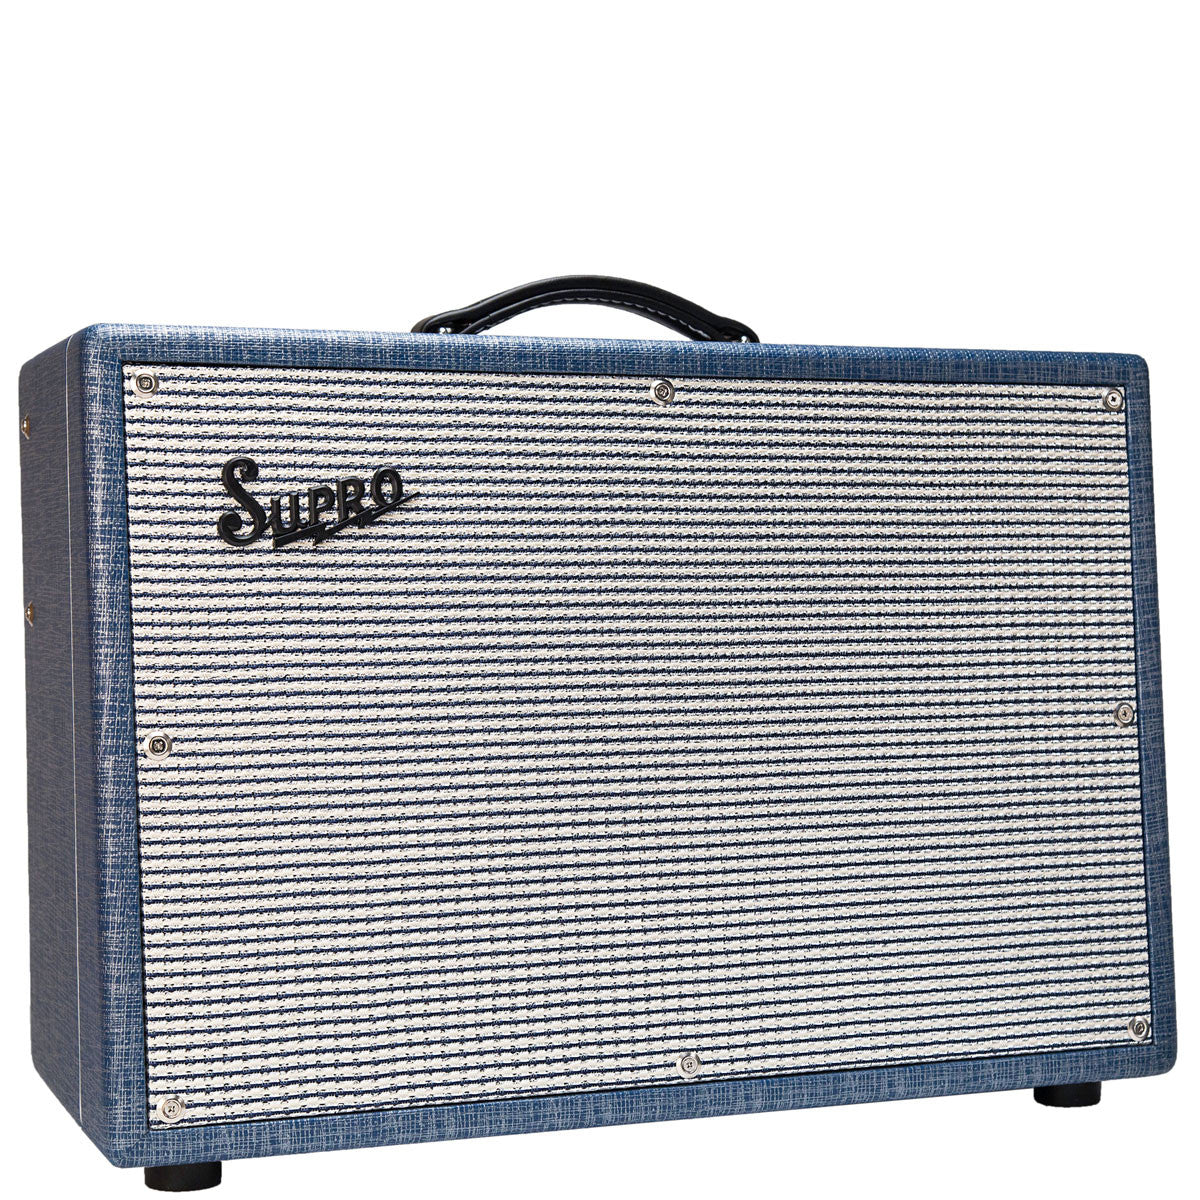 Supro - 1624T - Dual Tone 1x12 Combo | Lucky Fret Music Co.